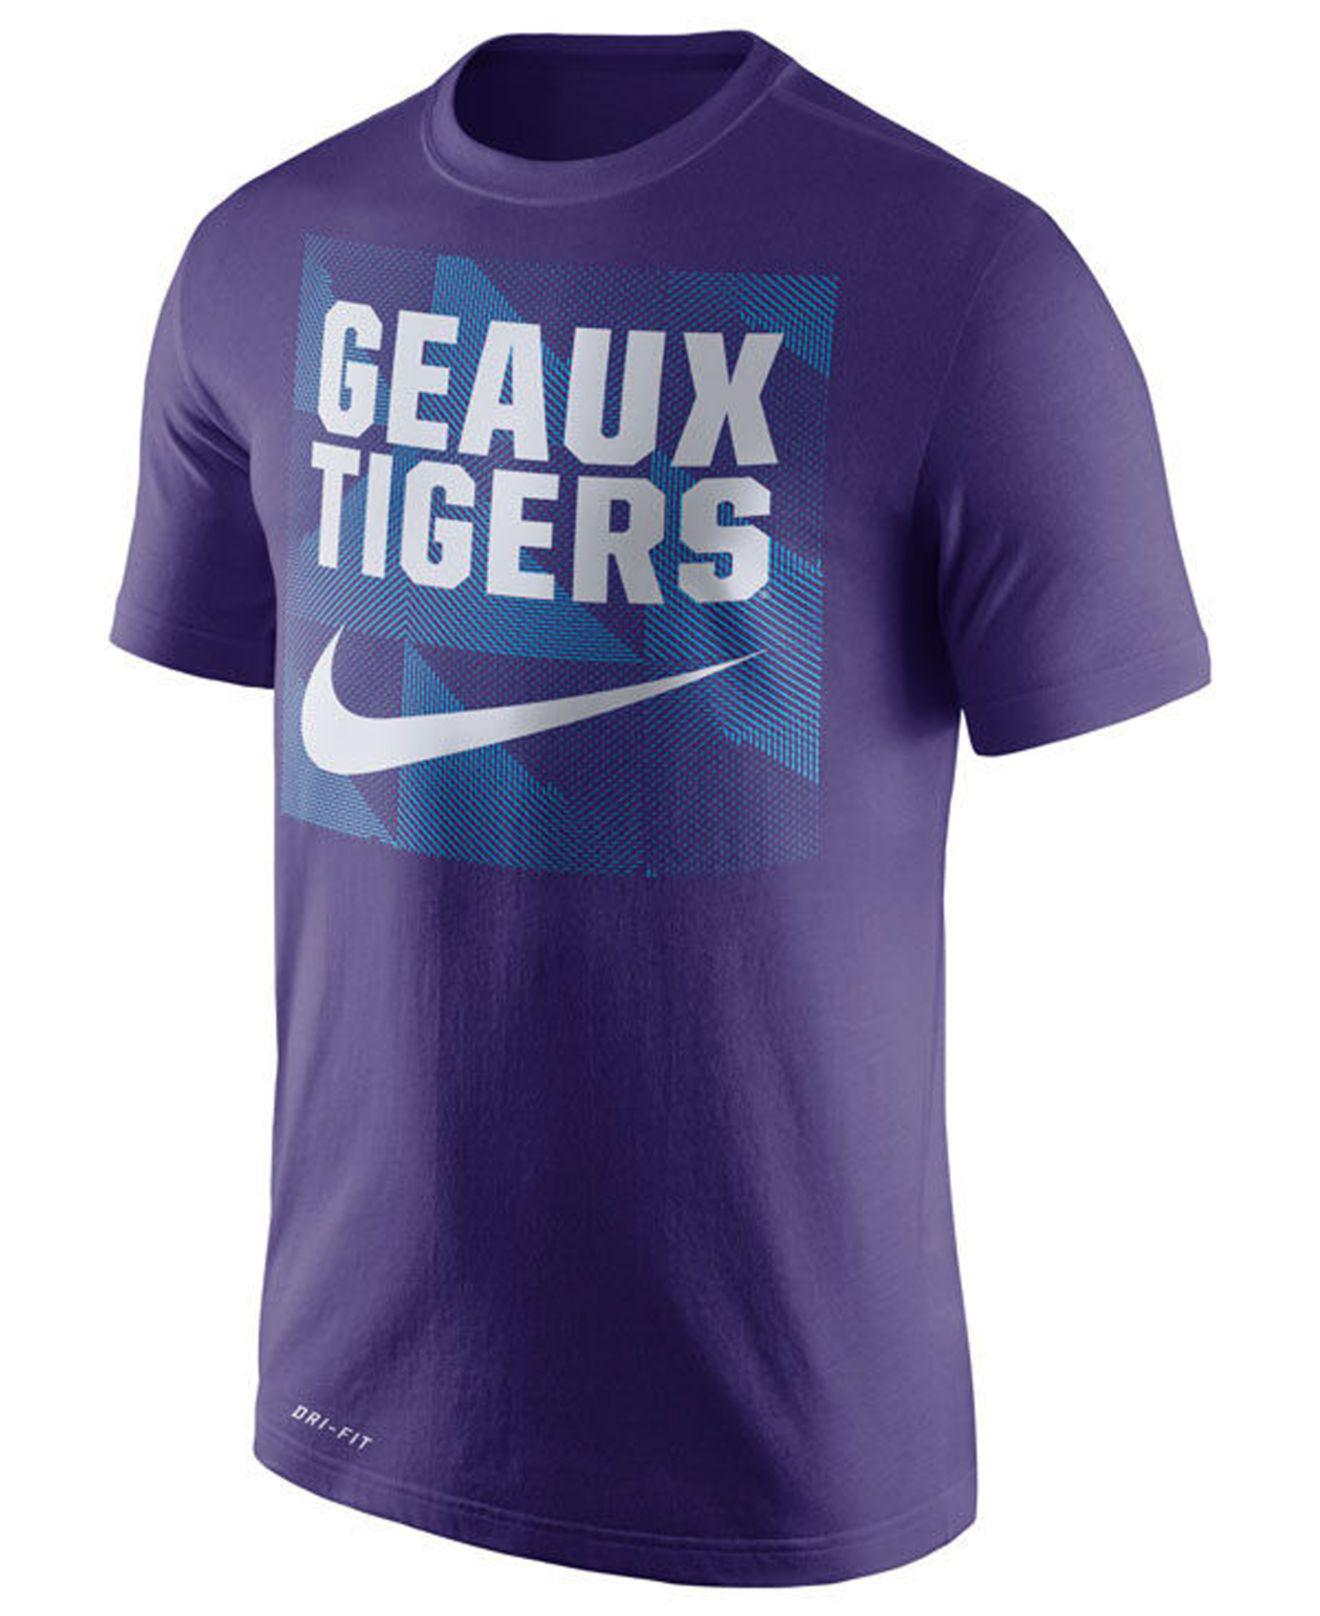 huge selection of db438 29c62 Lyst - Nike Lsu Tigers Dri-fit Fluid Force Mantra T-shirt in Purple ...